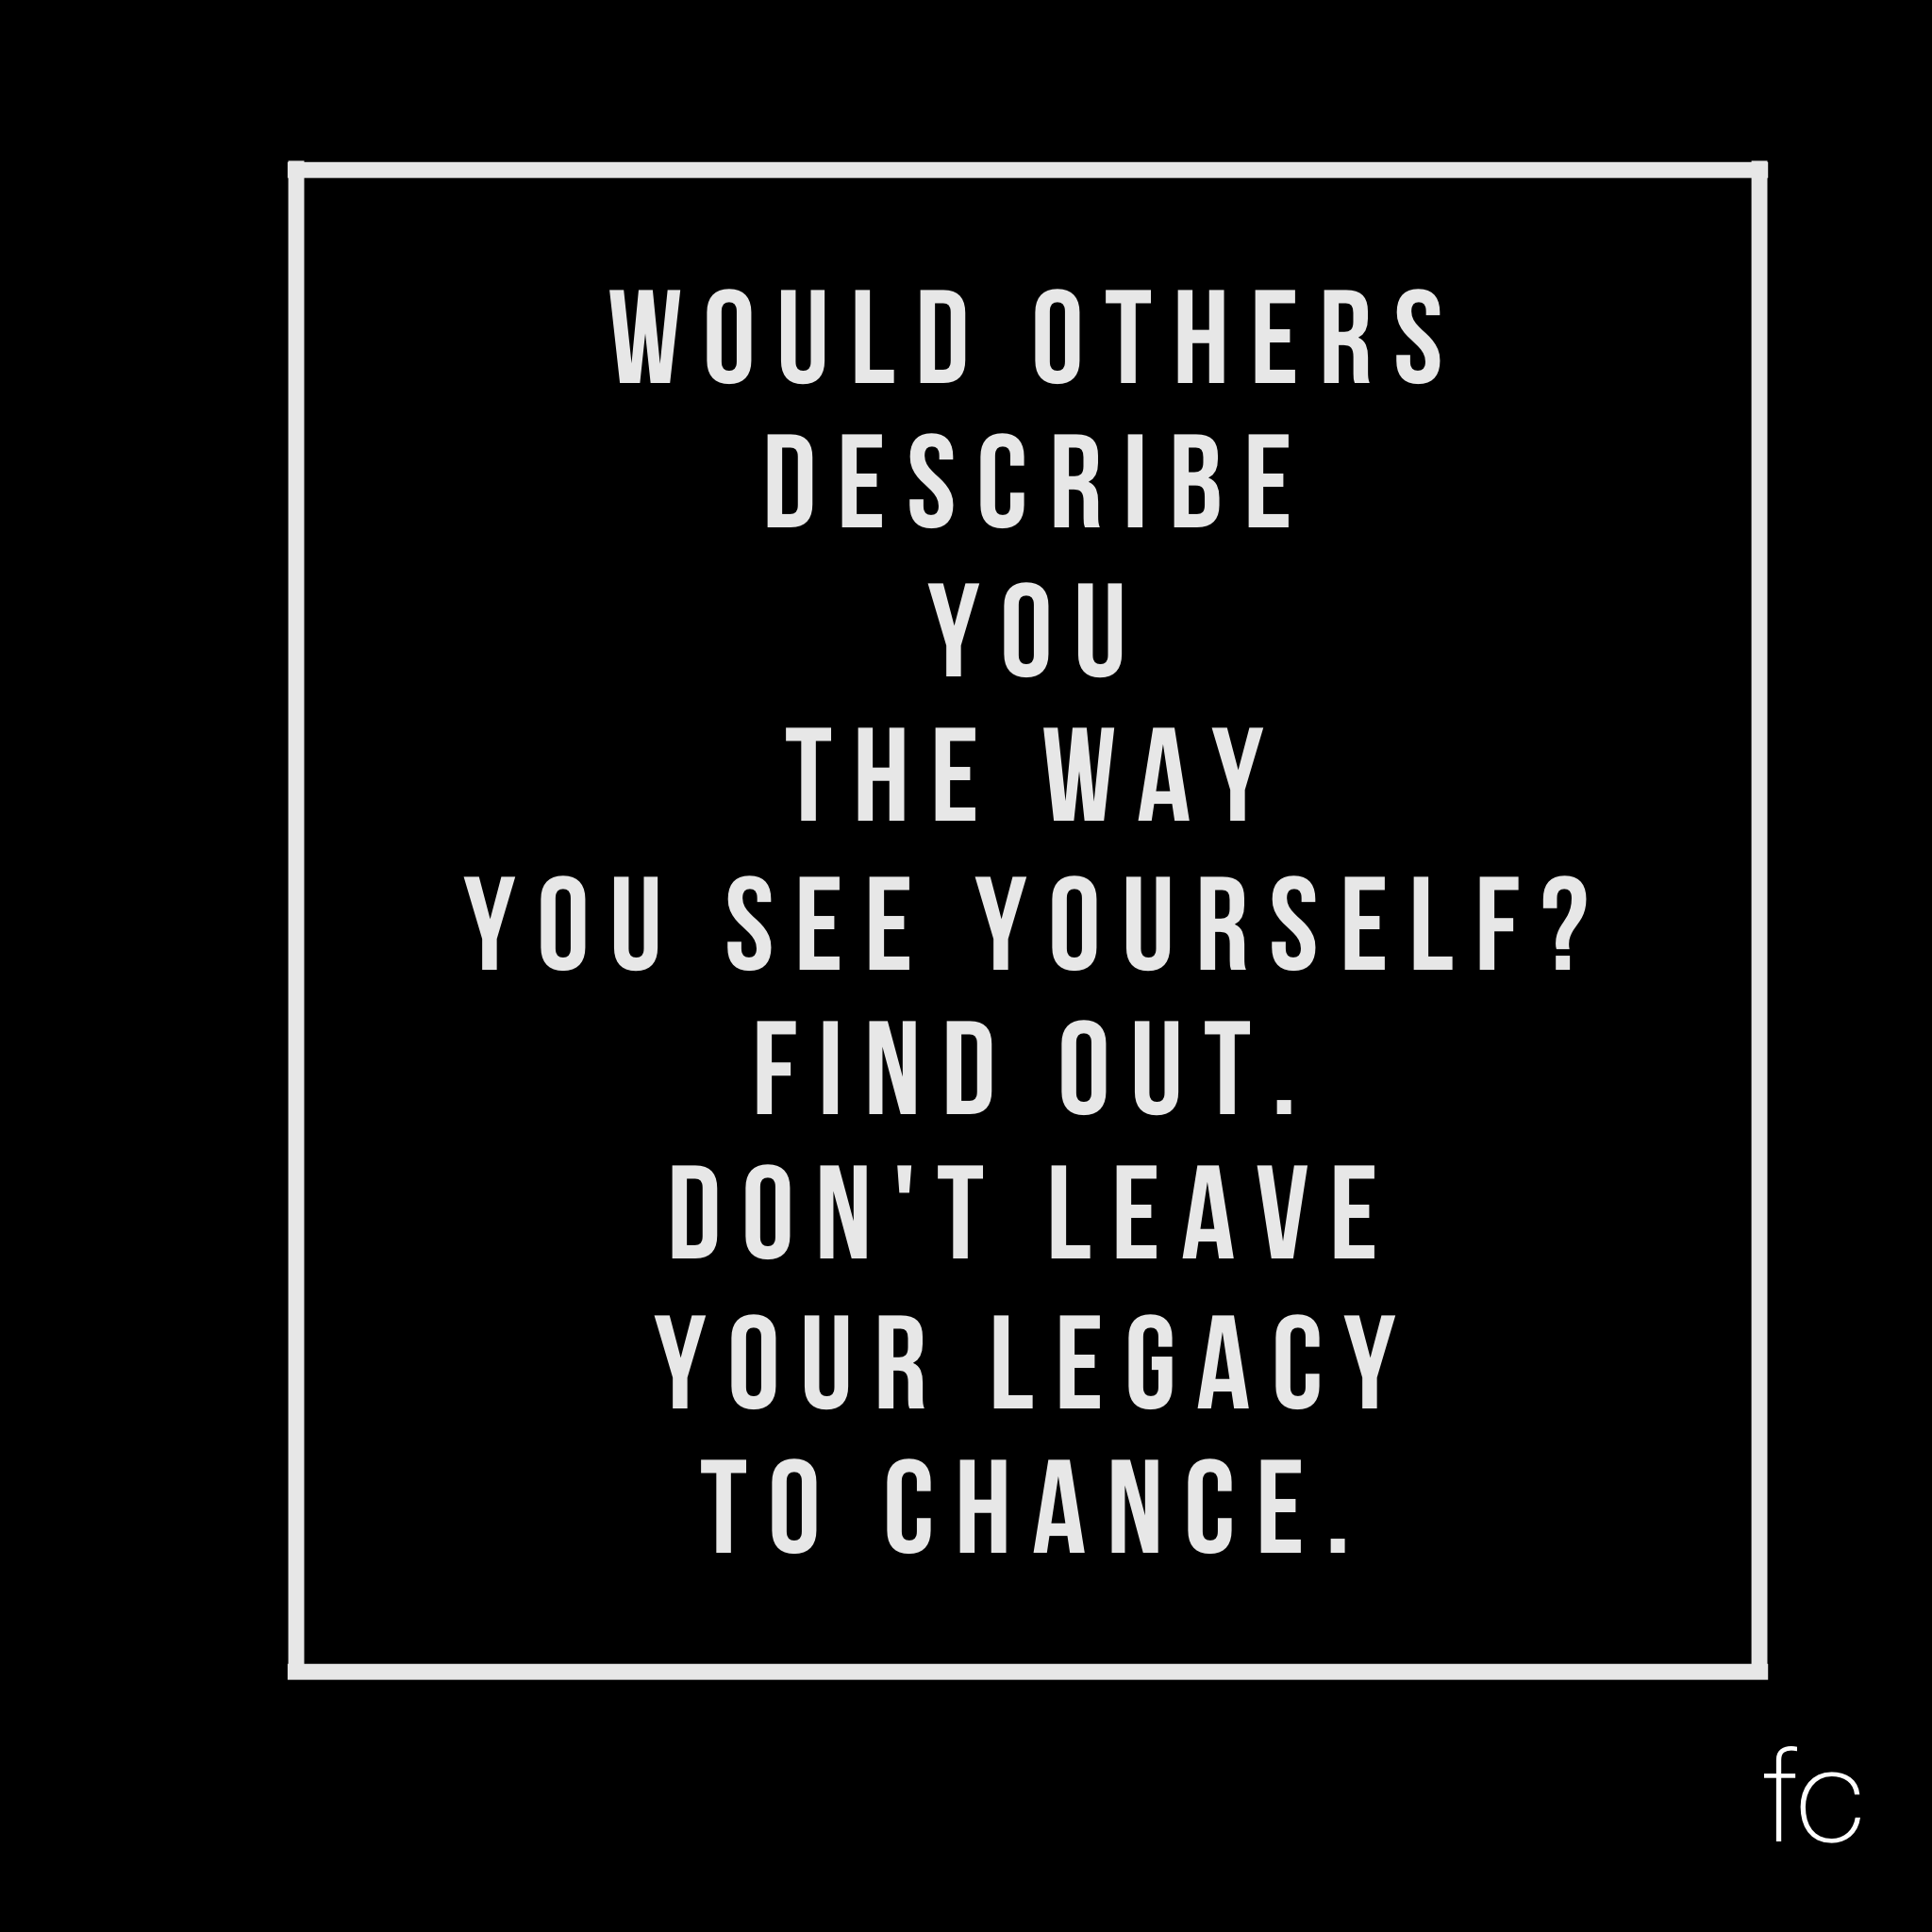 Would others describe you the way you see yourself